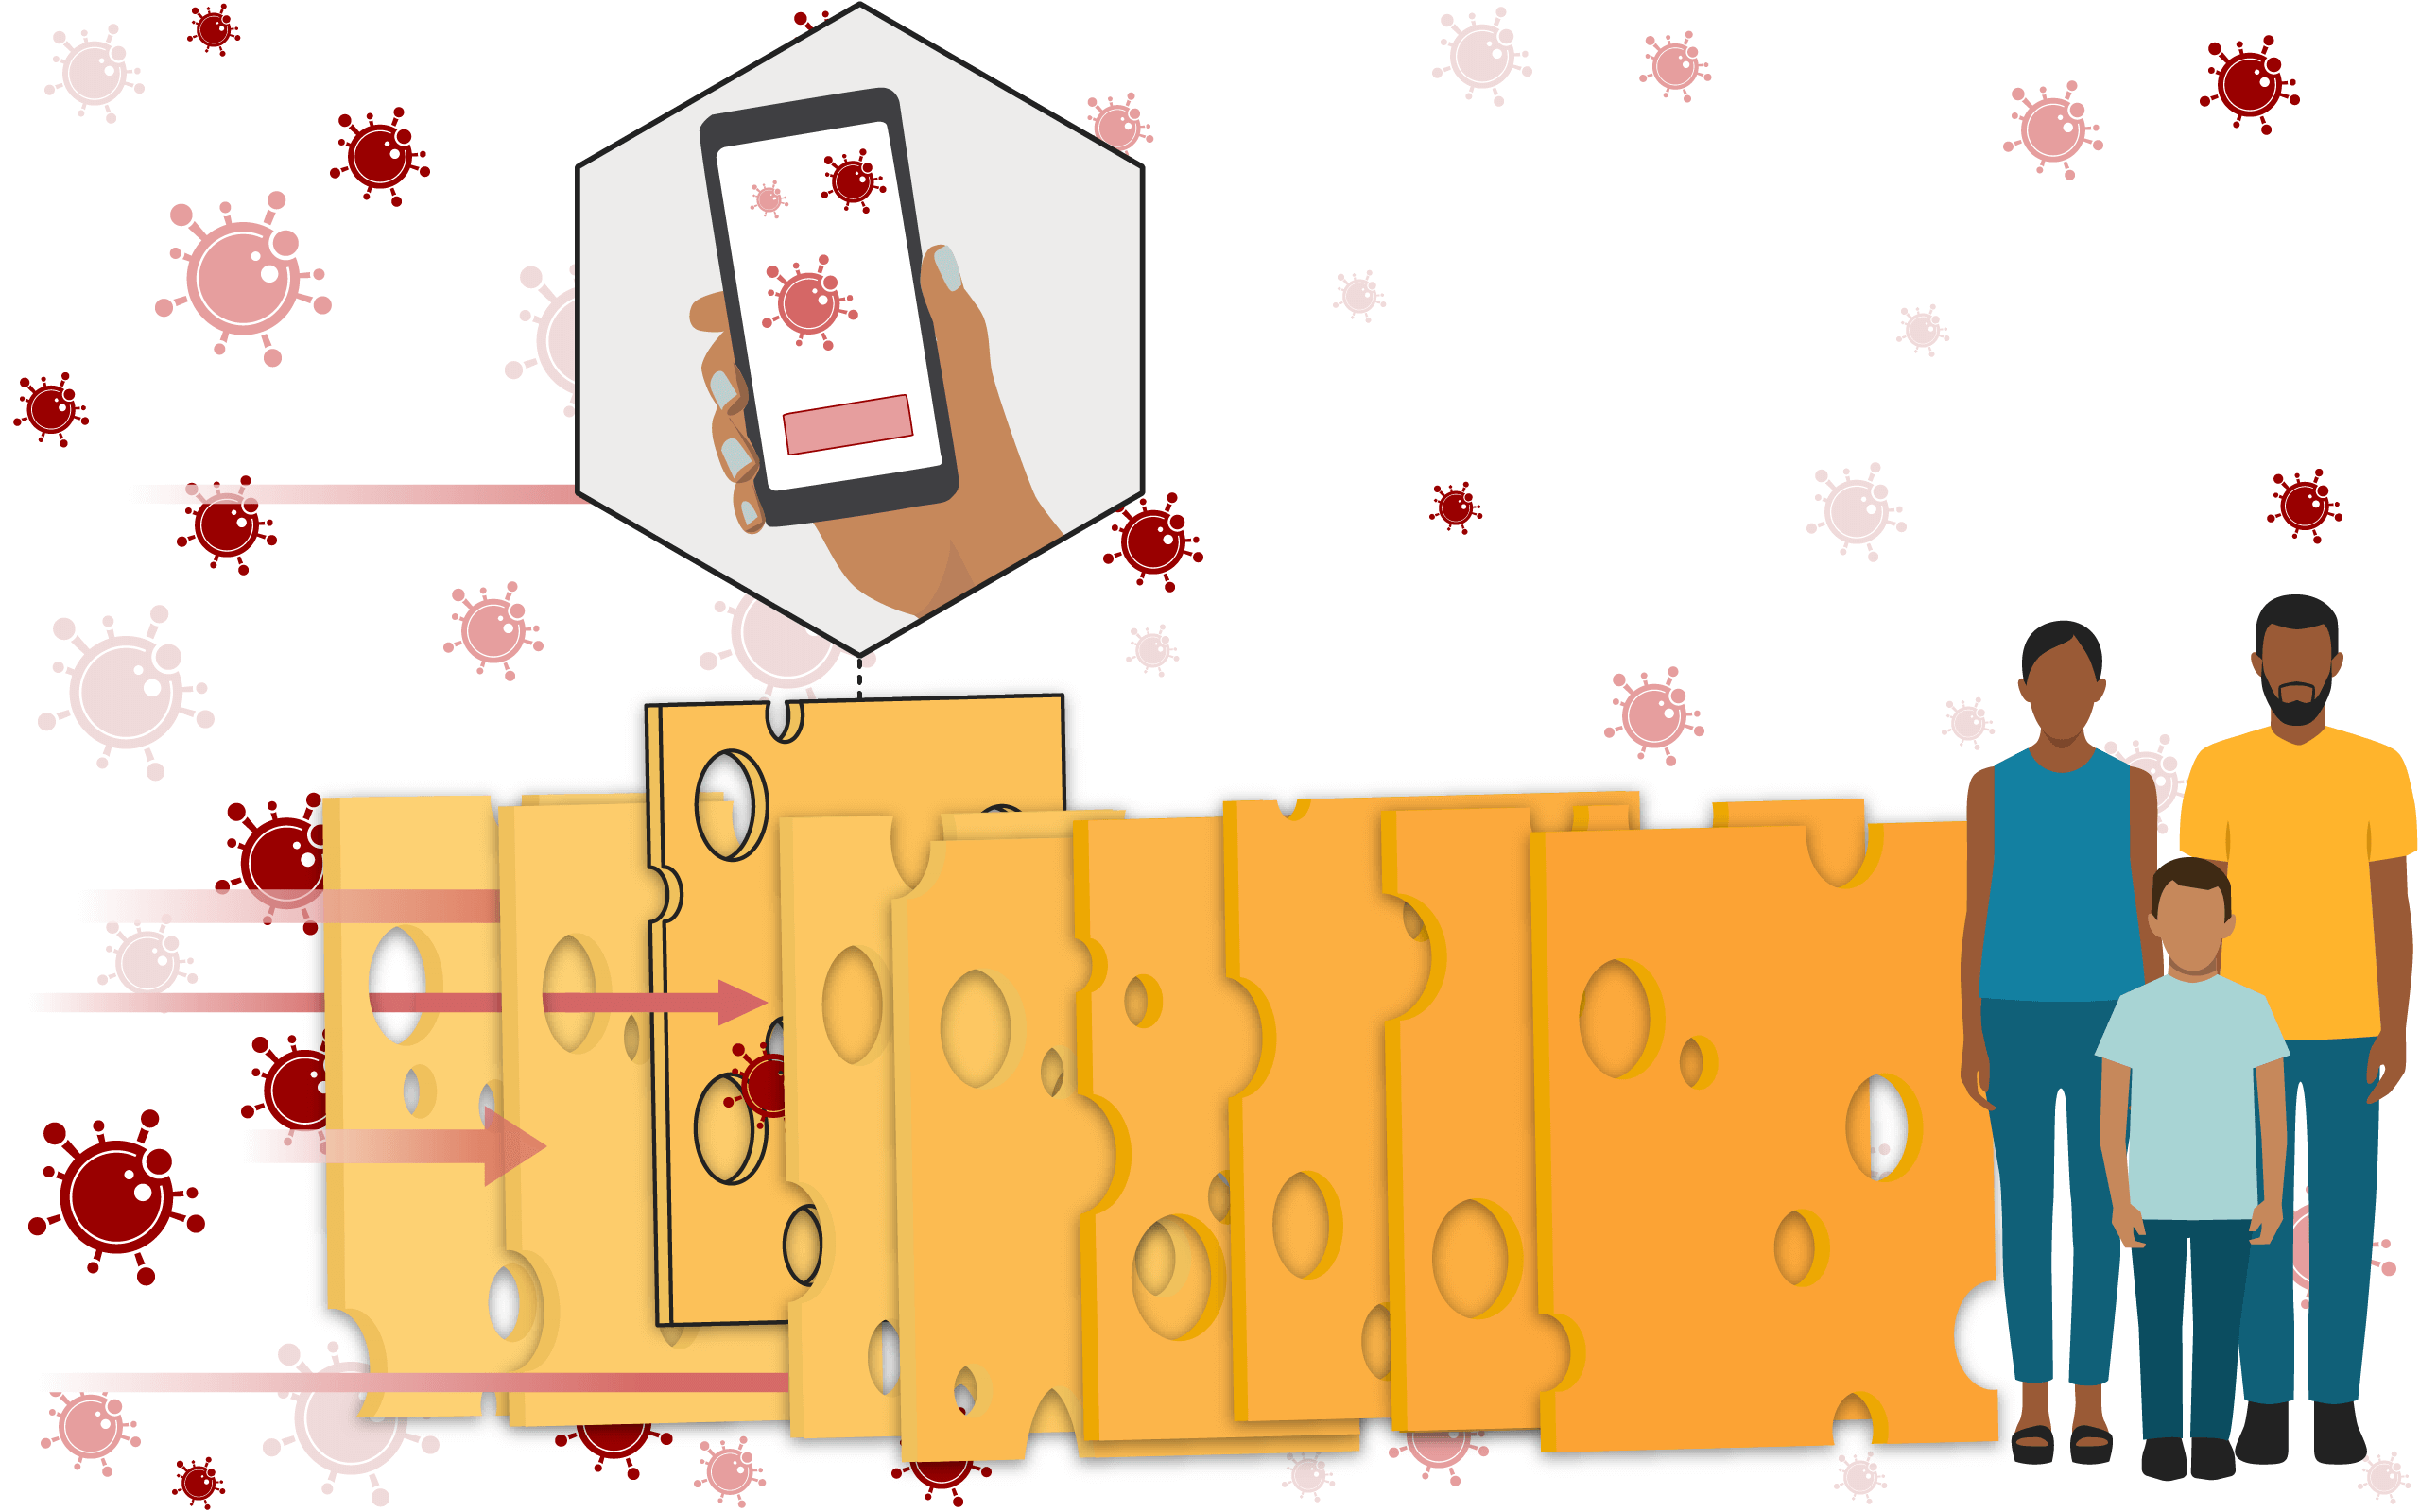 Illustration of a Swiss cheese, with a slice highlighted, representing tracing